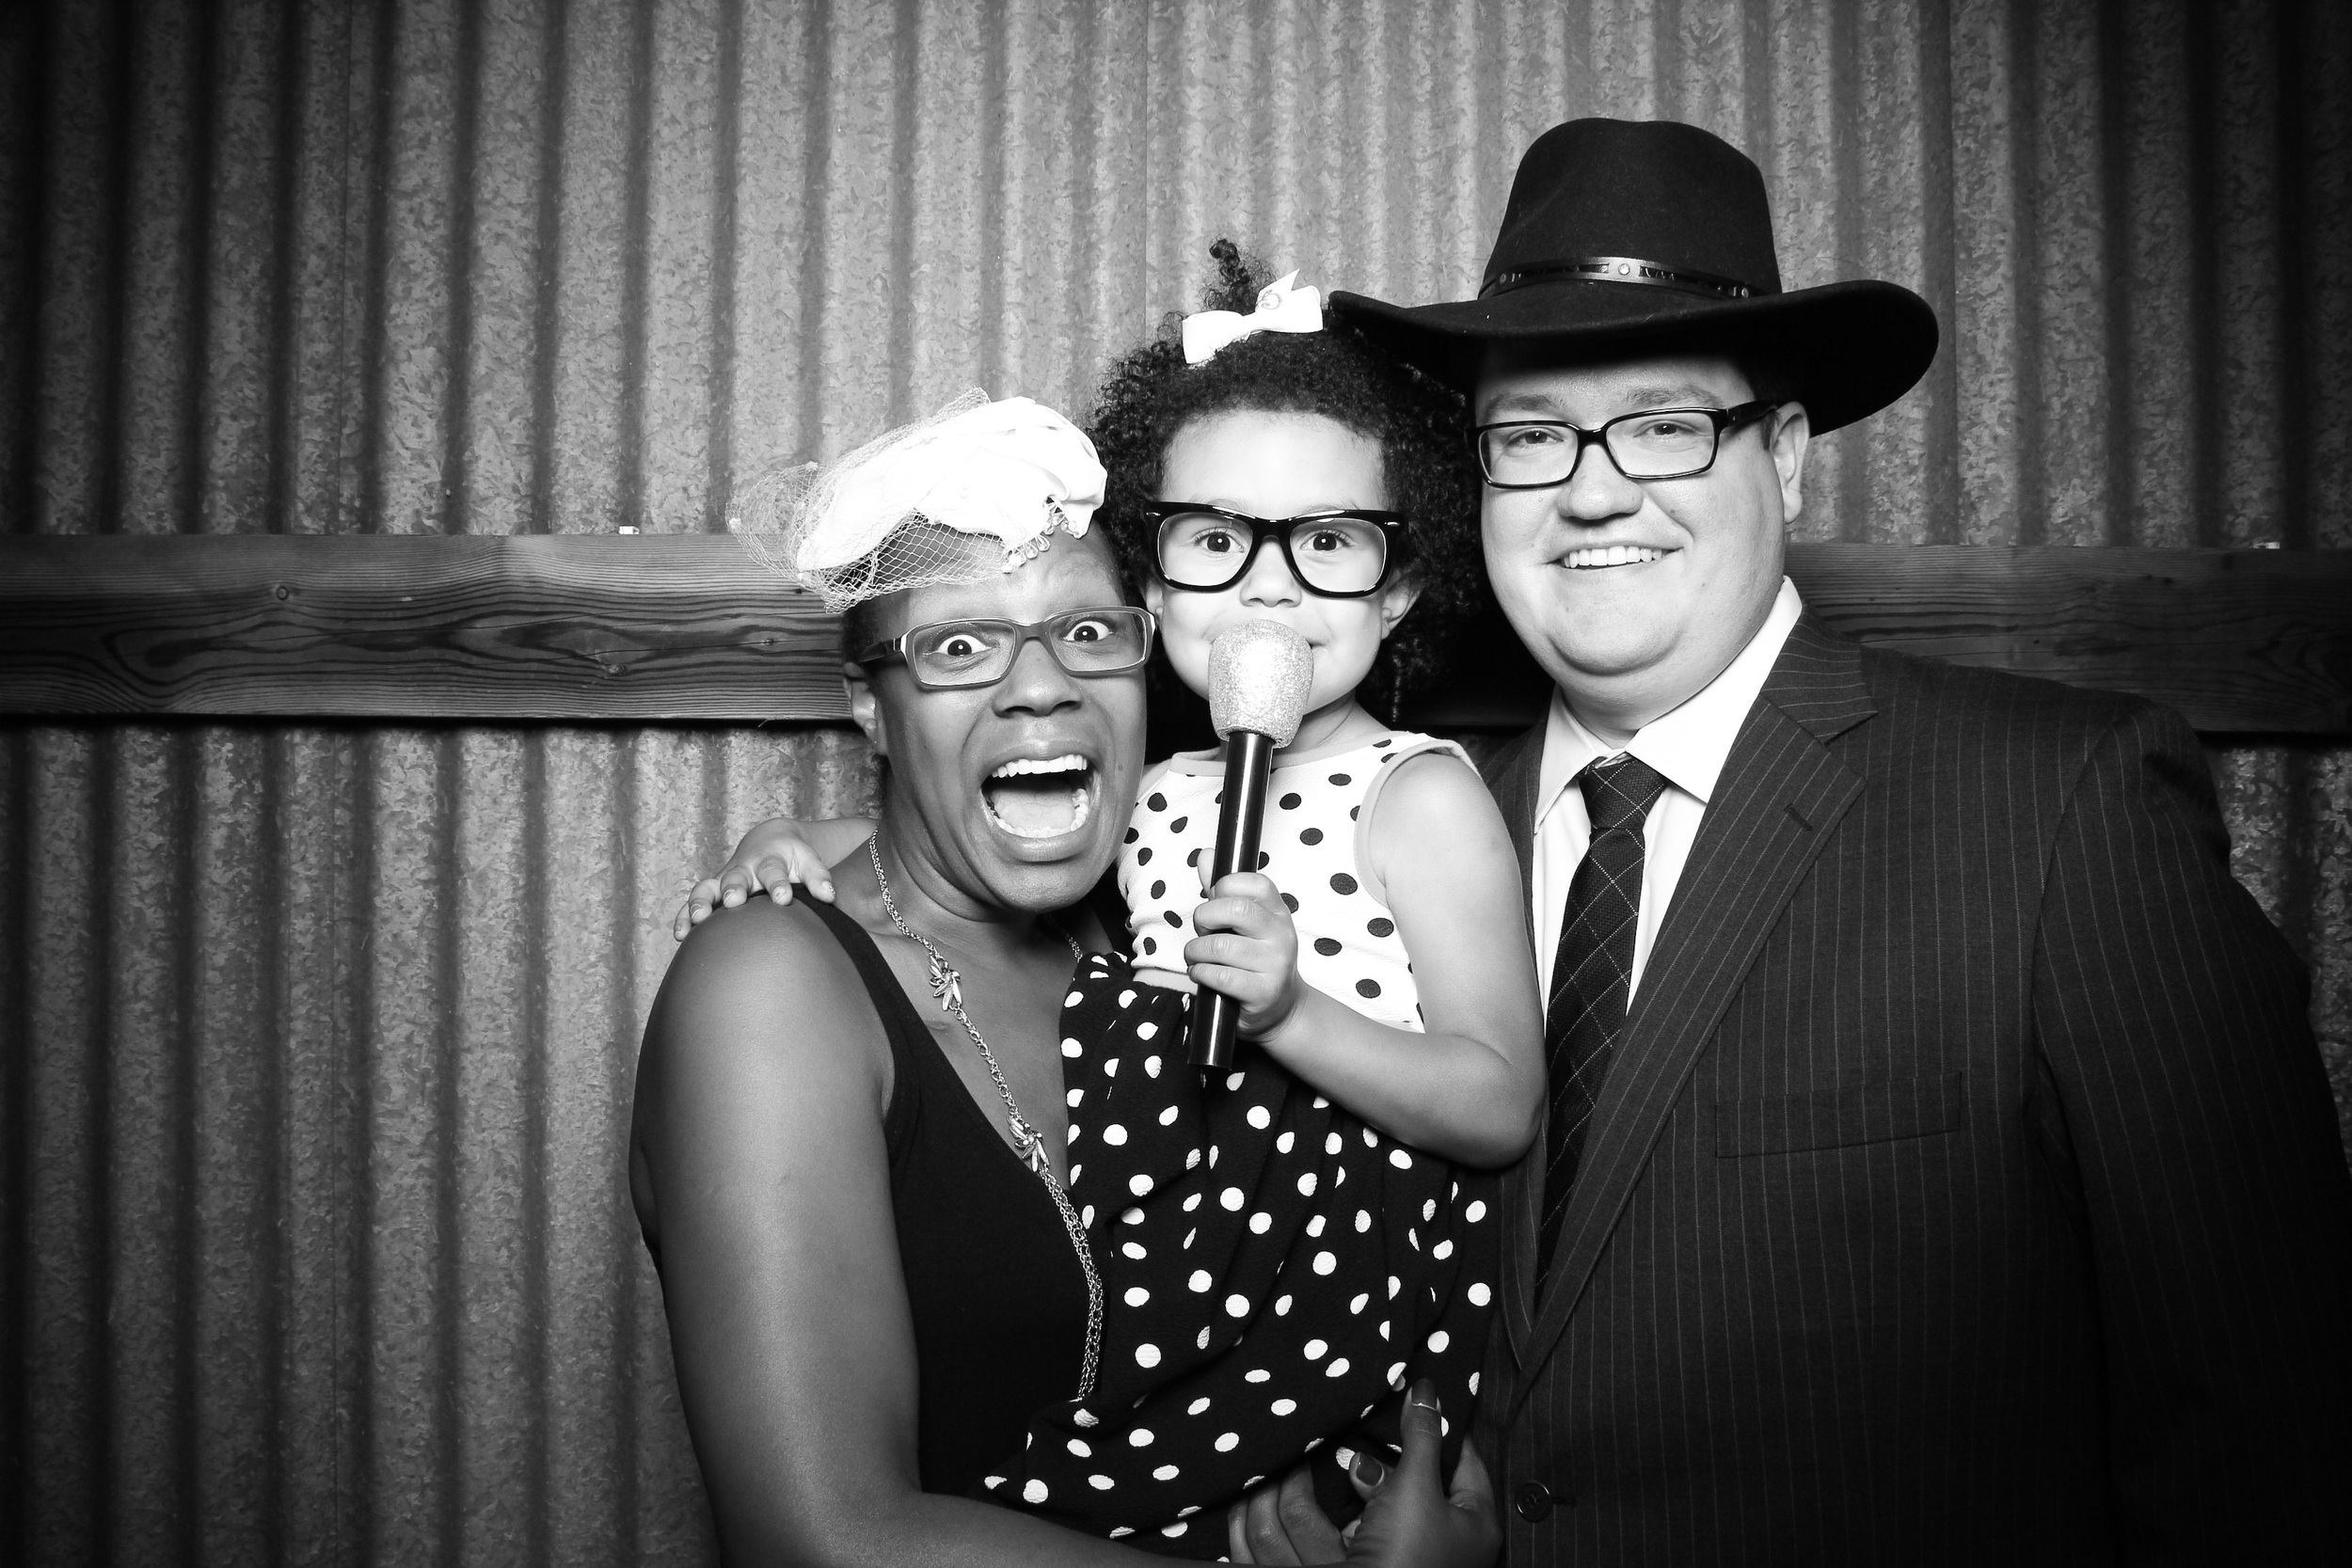 Wedding guests take a fun photo booth picture with the vintage props at the Mora Farm in Waterman, IL.